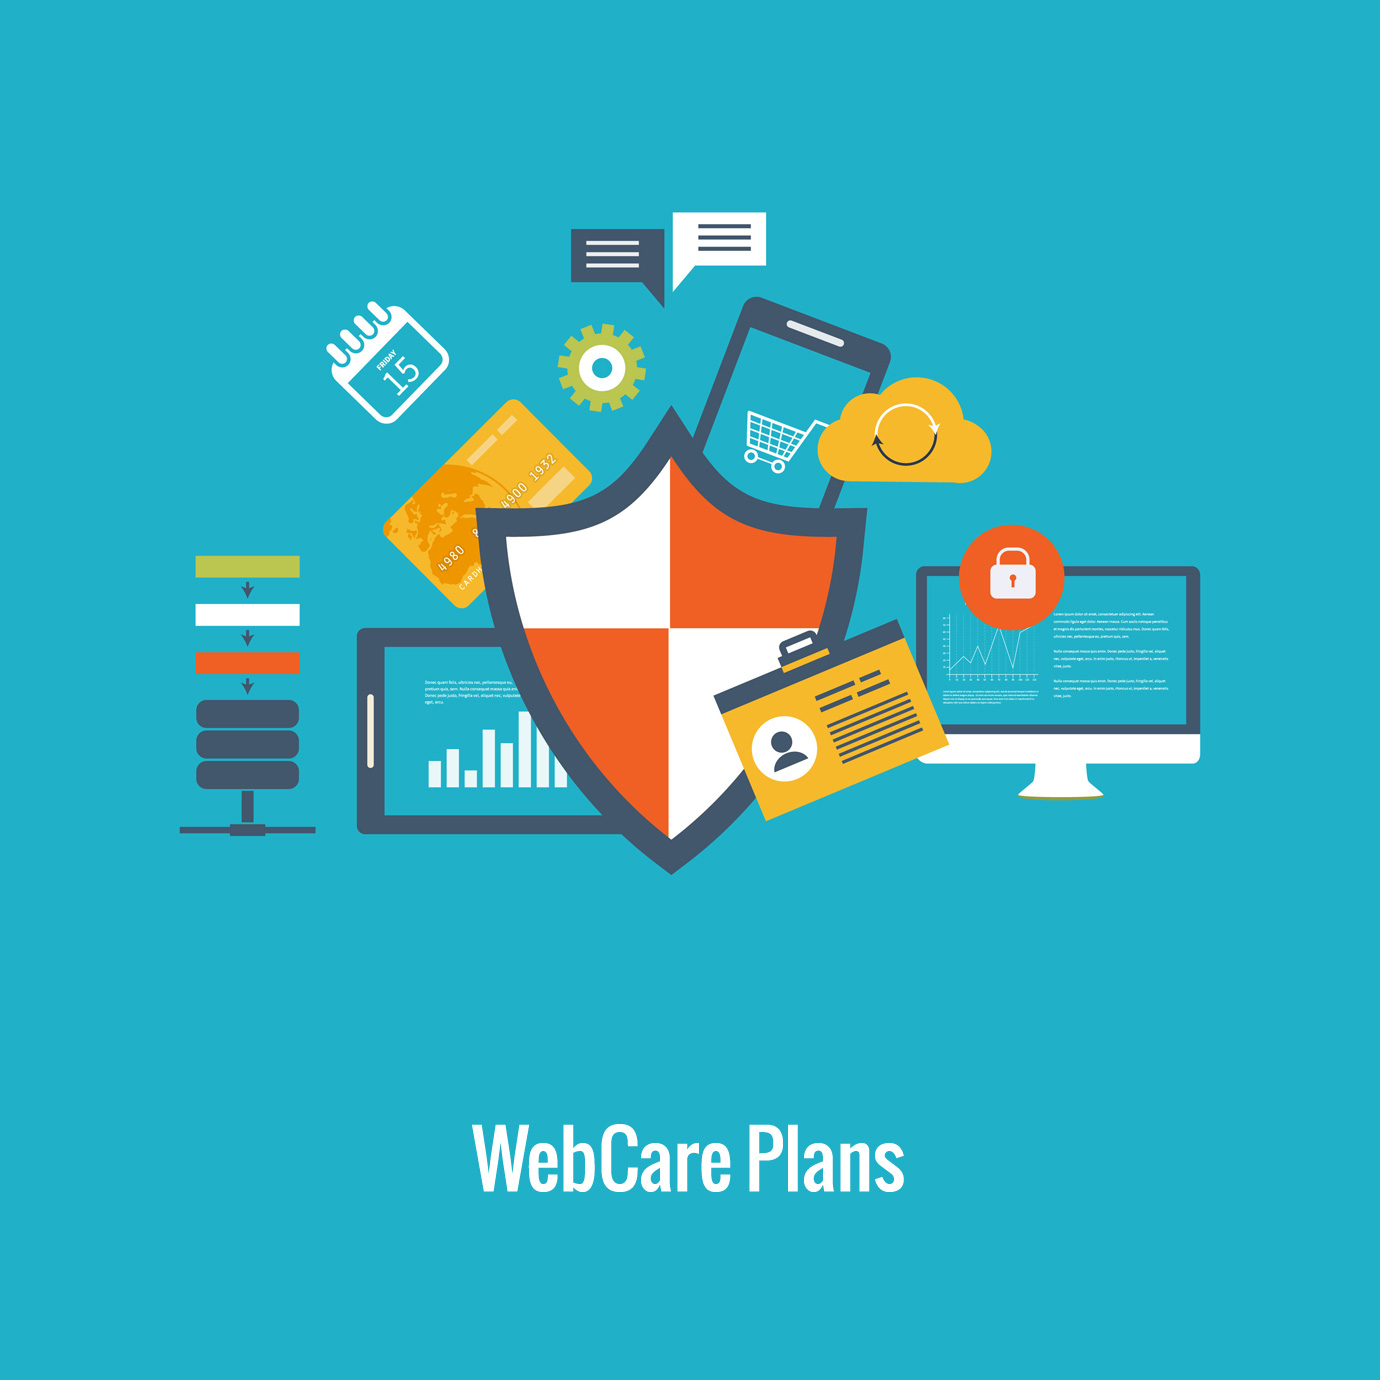 KindleVision WebCare Plans for WordPress Security